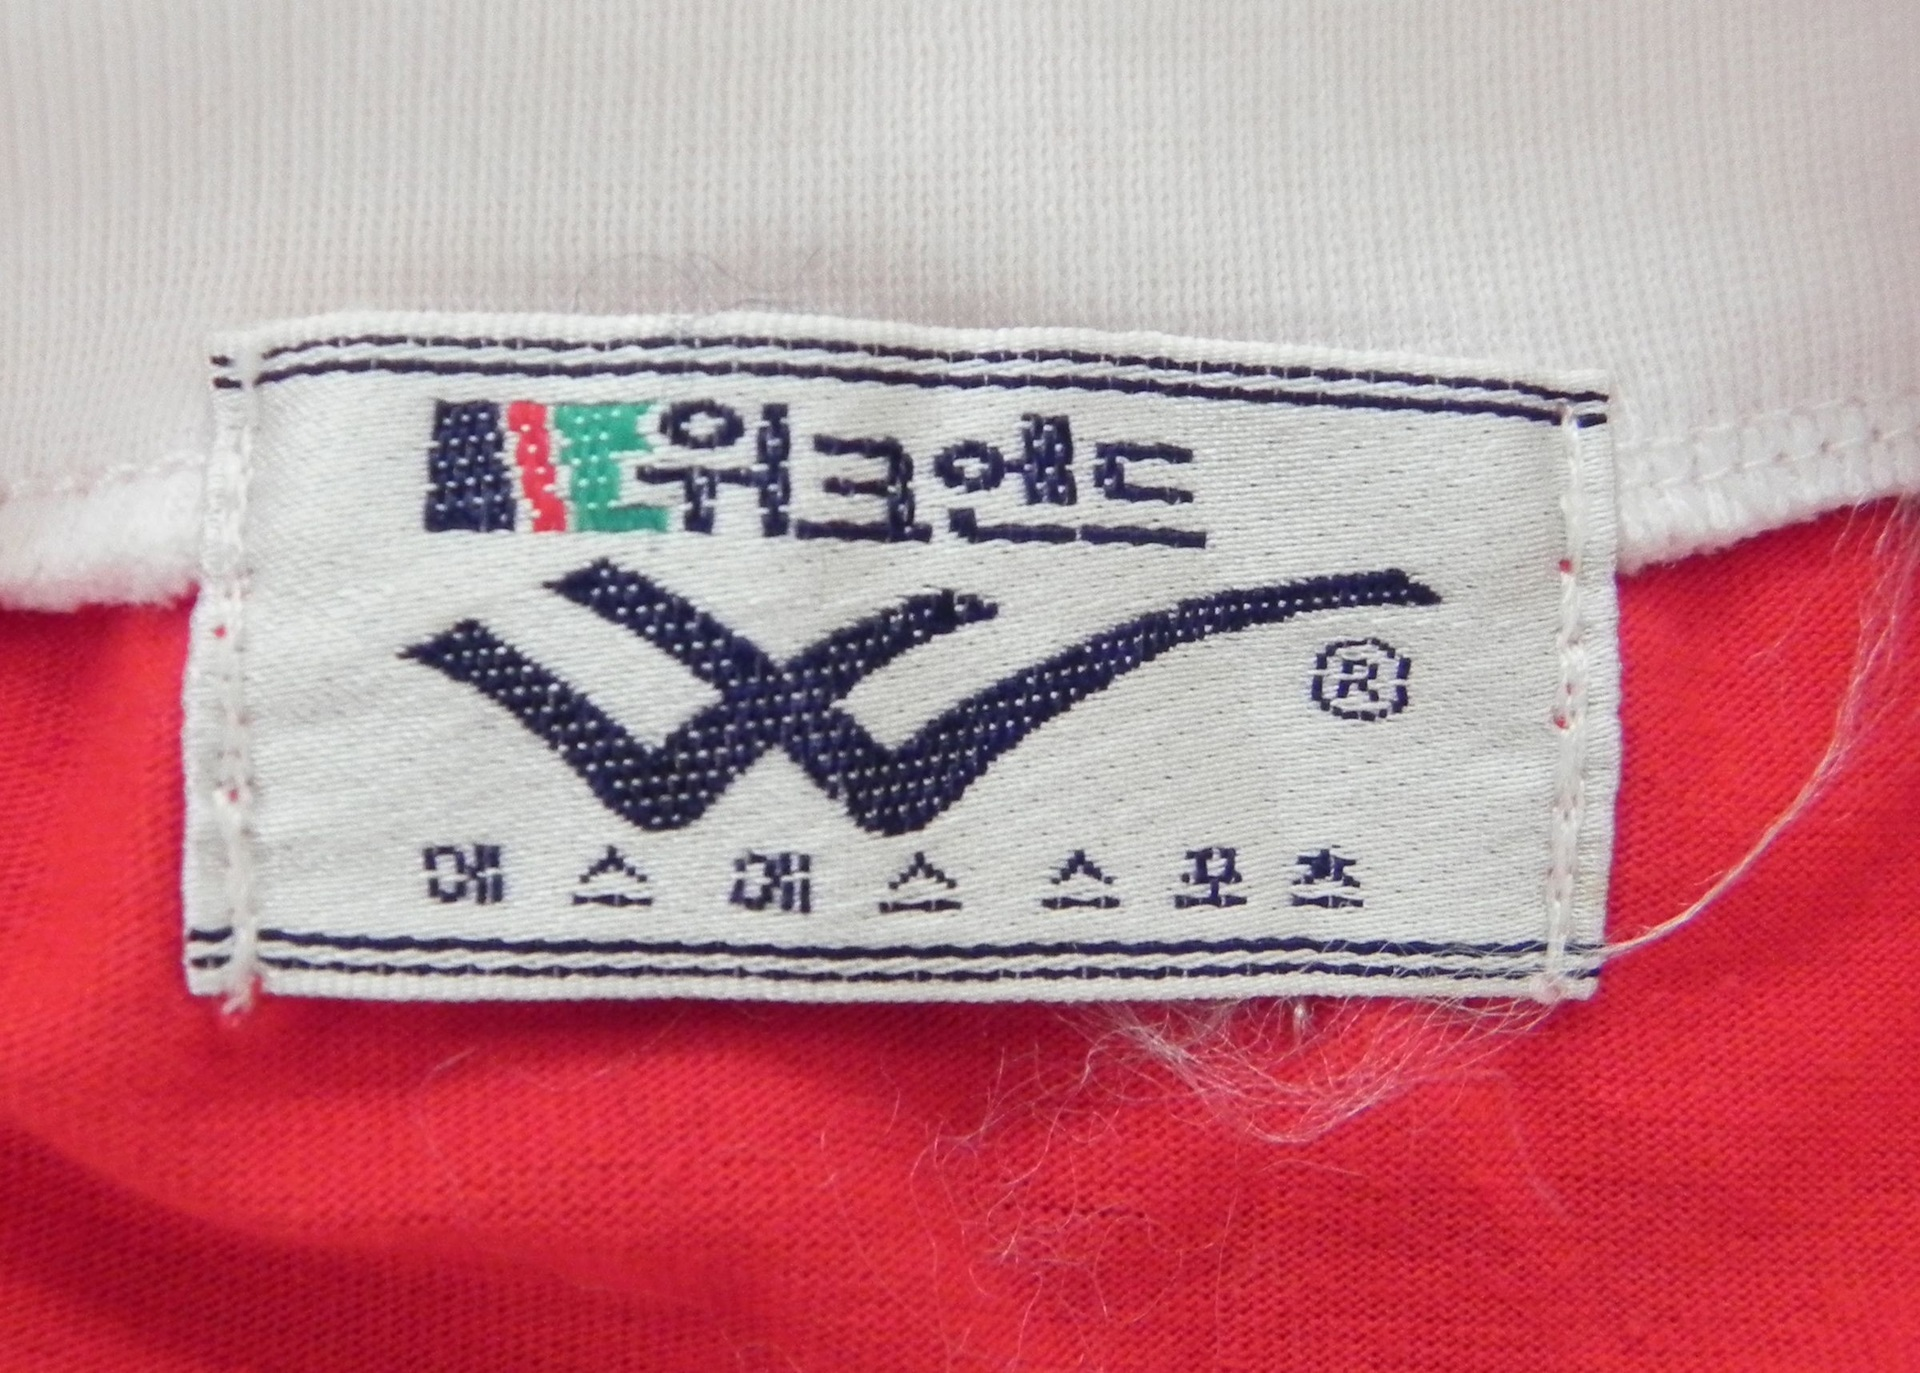 South-Korea-1986-kit-logo.jpg